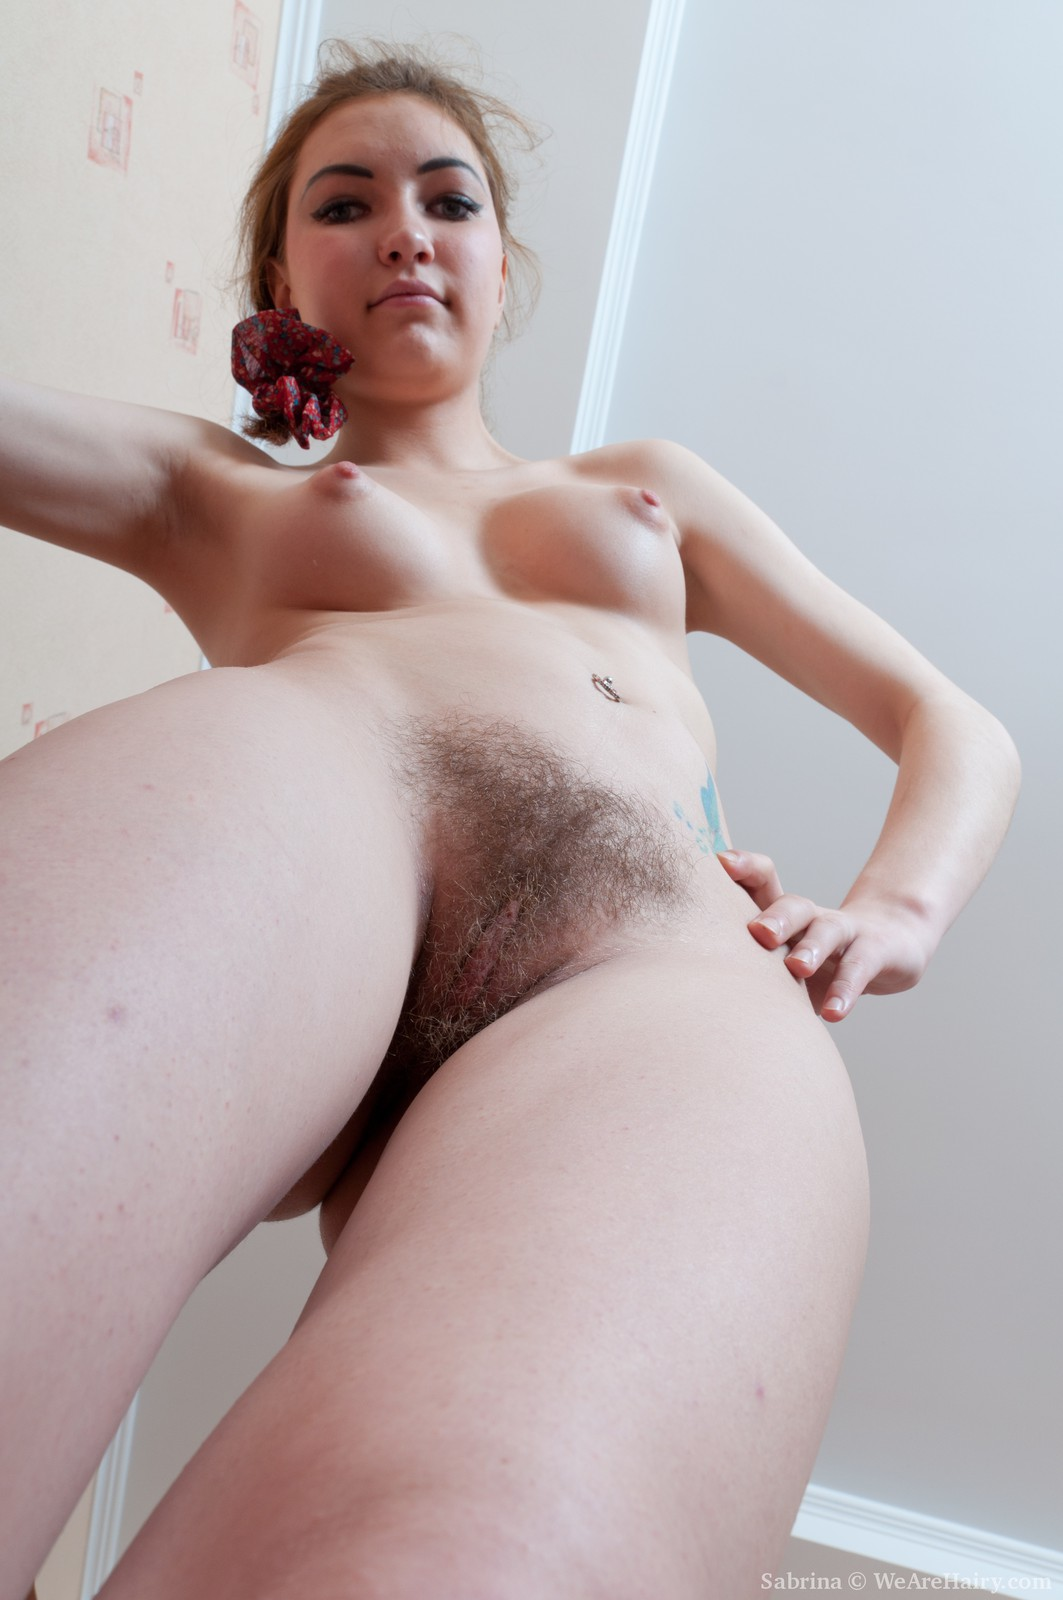 yang hairy pusy-xxx video hot porn